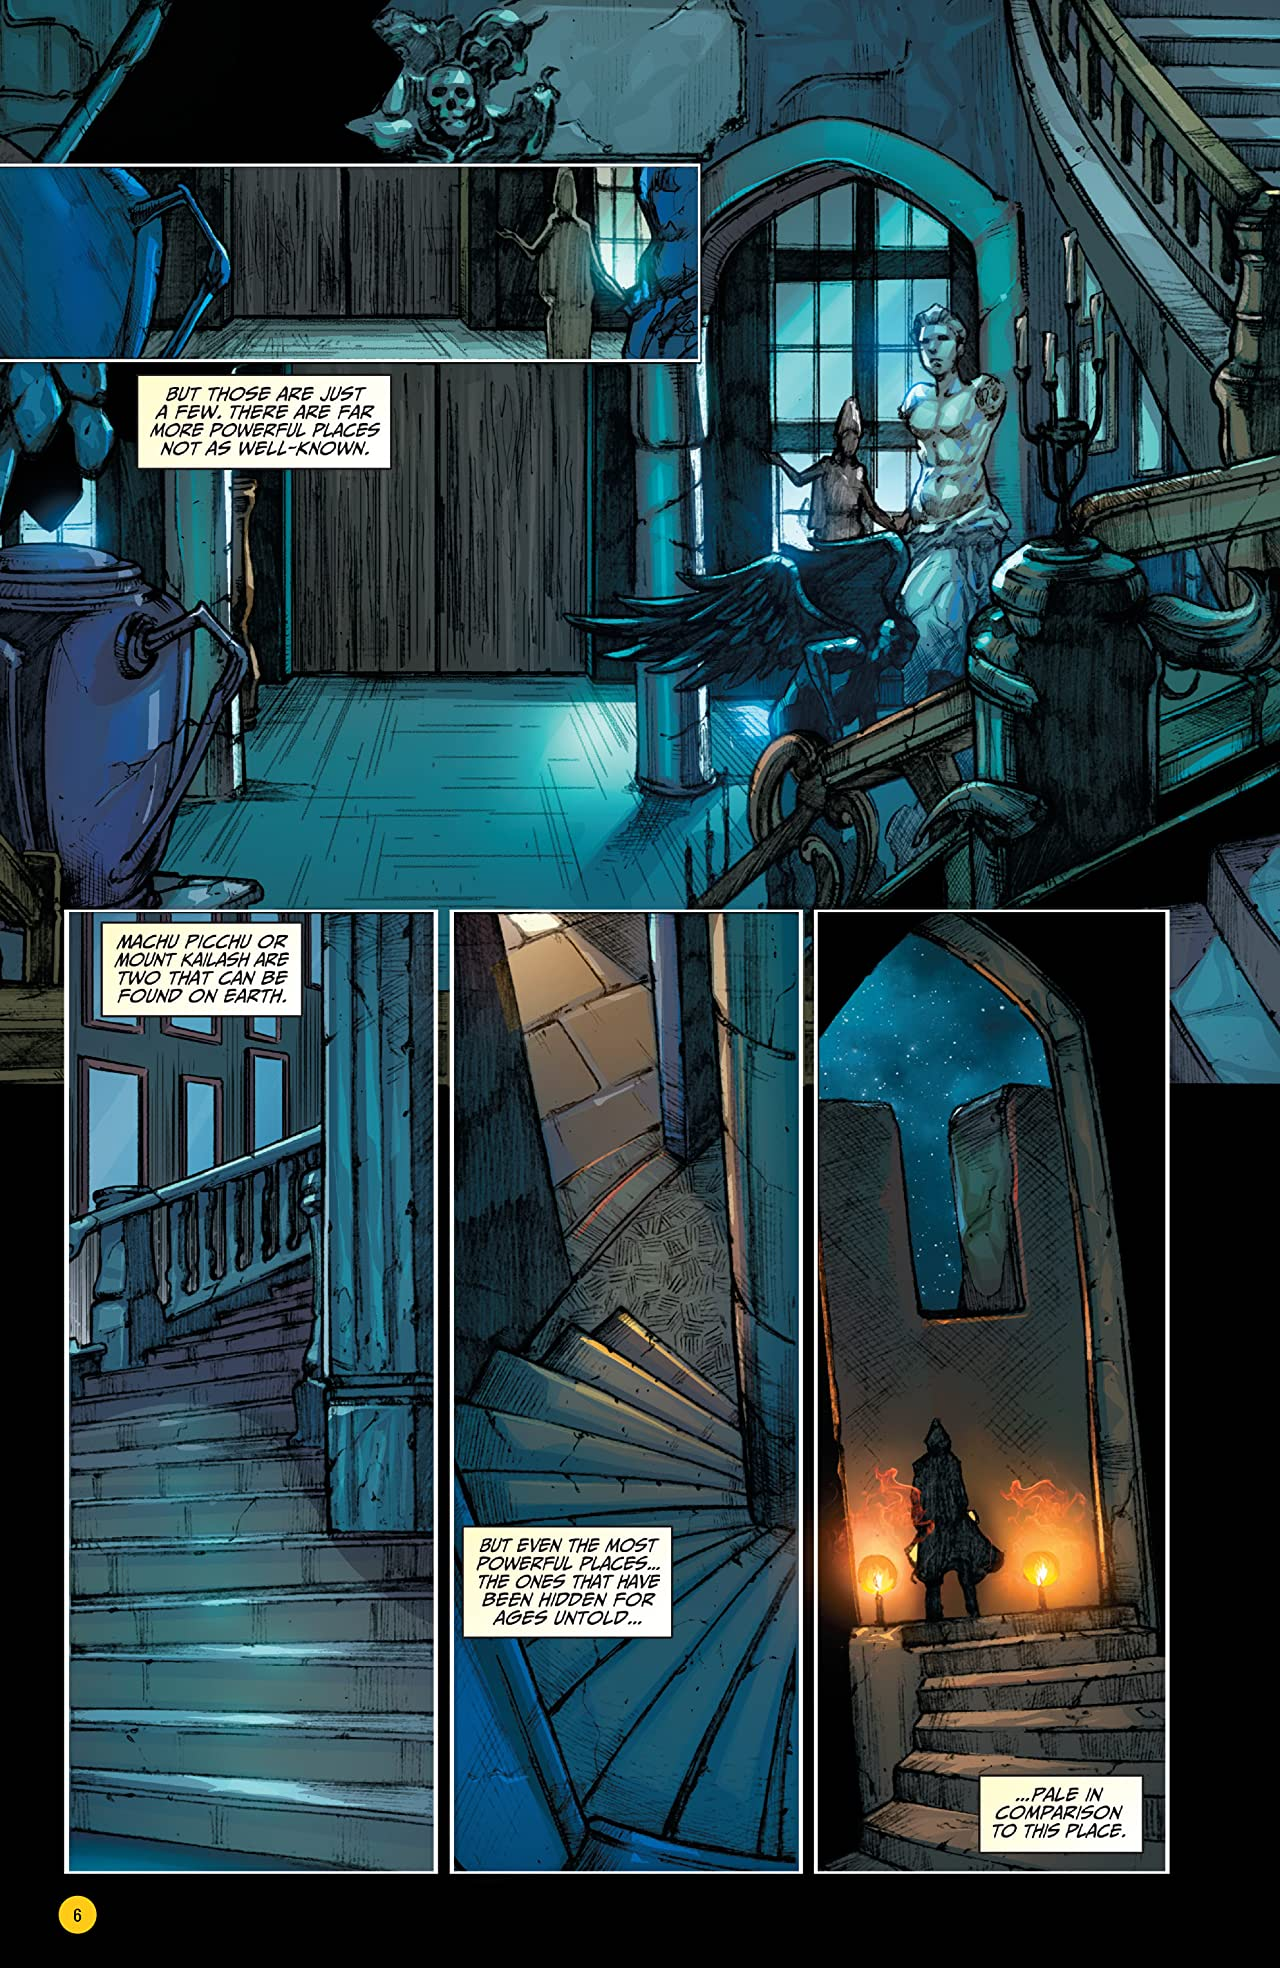 Grimm Fairy Tales: Age of Camelot